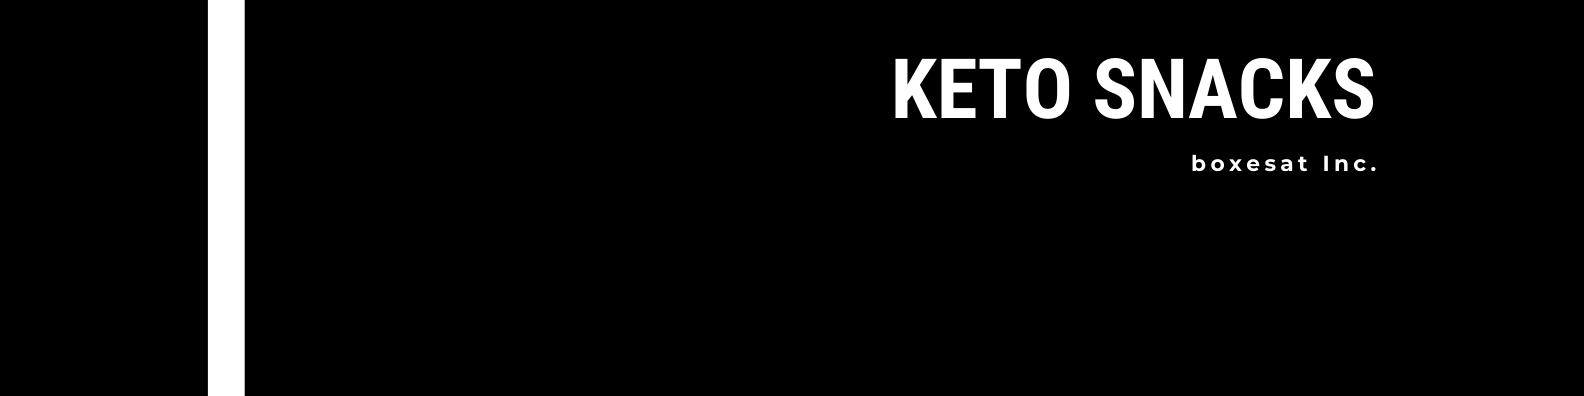 Black and white banner containing text that reads keto snacks and boxesat Inc.